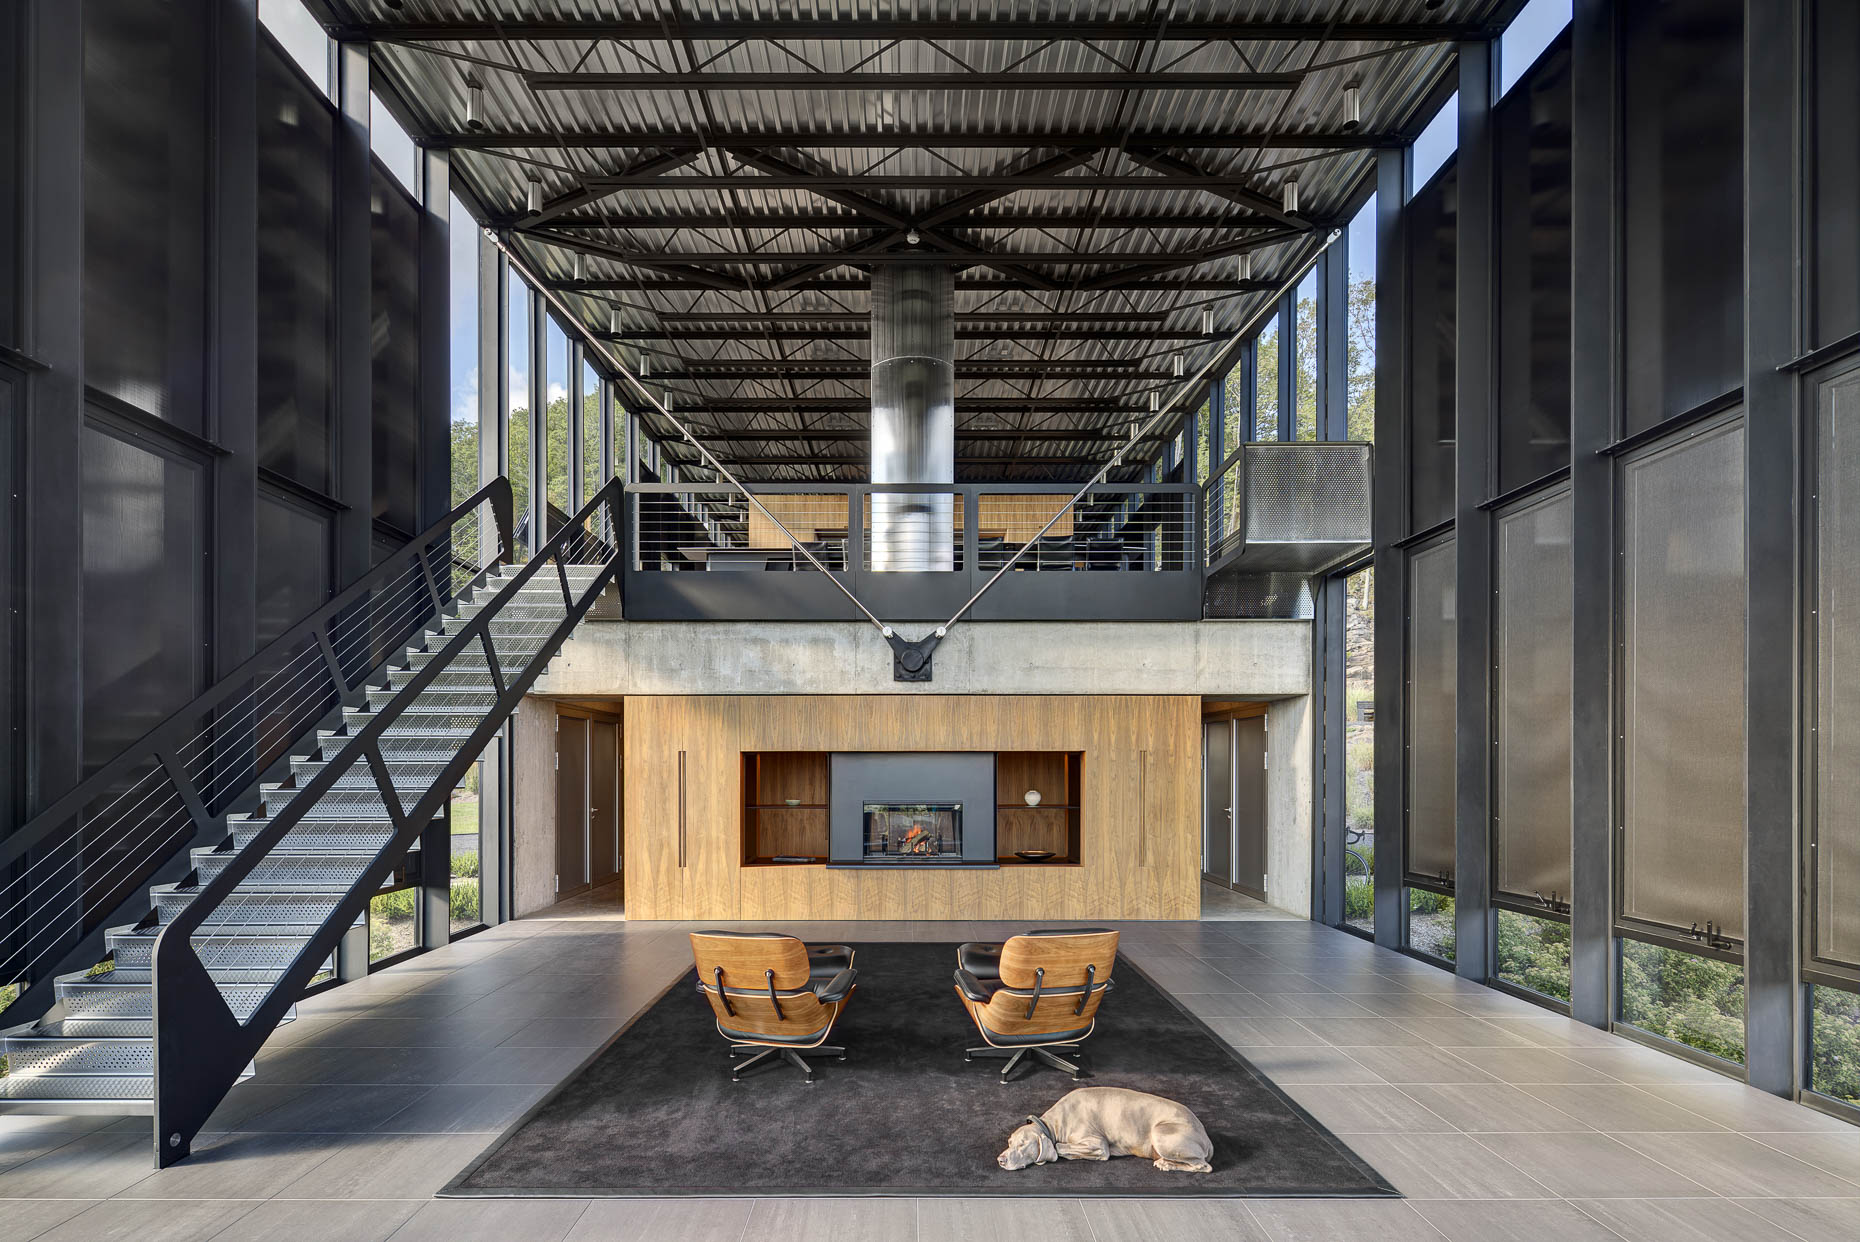 Shokan Private Residence by Jay Bargmann photographed by Brad Feinknopf based in Columbus, Ohio